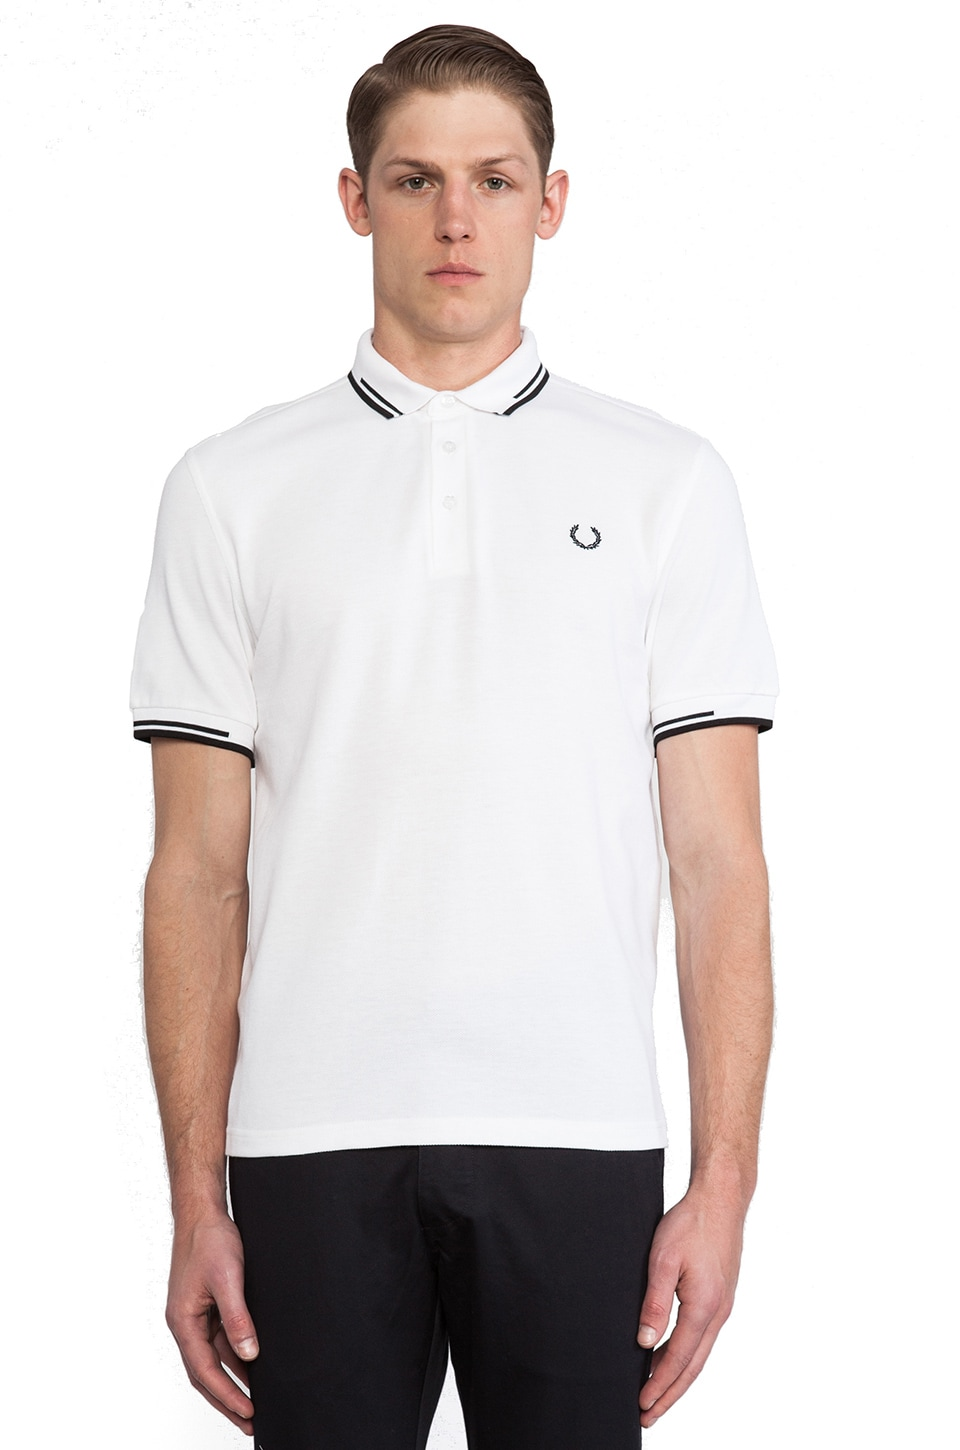 Fred Perry Laurel Wreath Broken Twin Tipped Shirt in White &  Black & Black